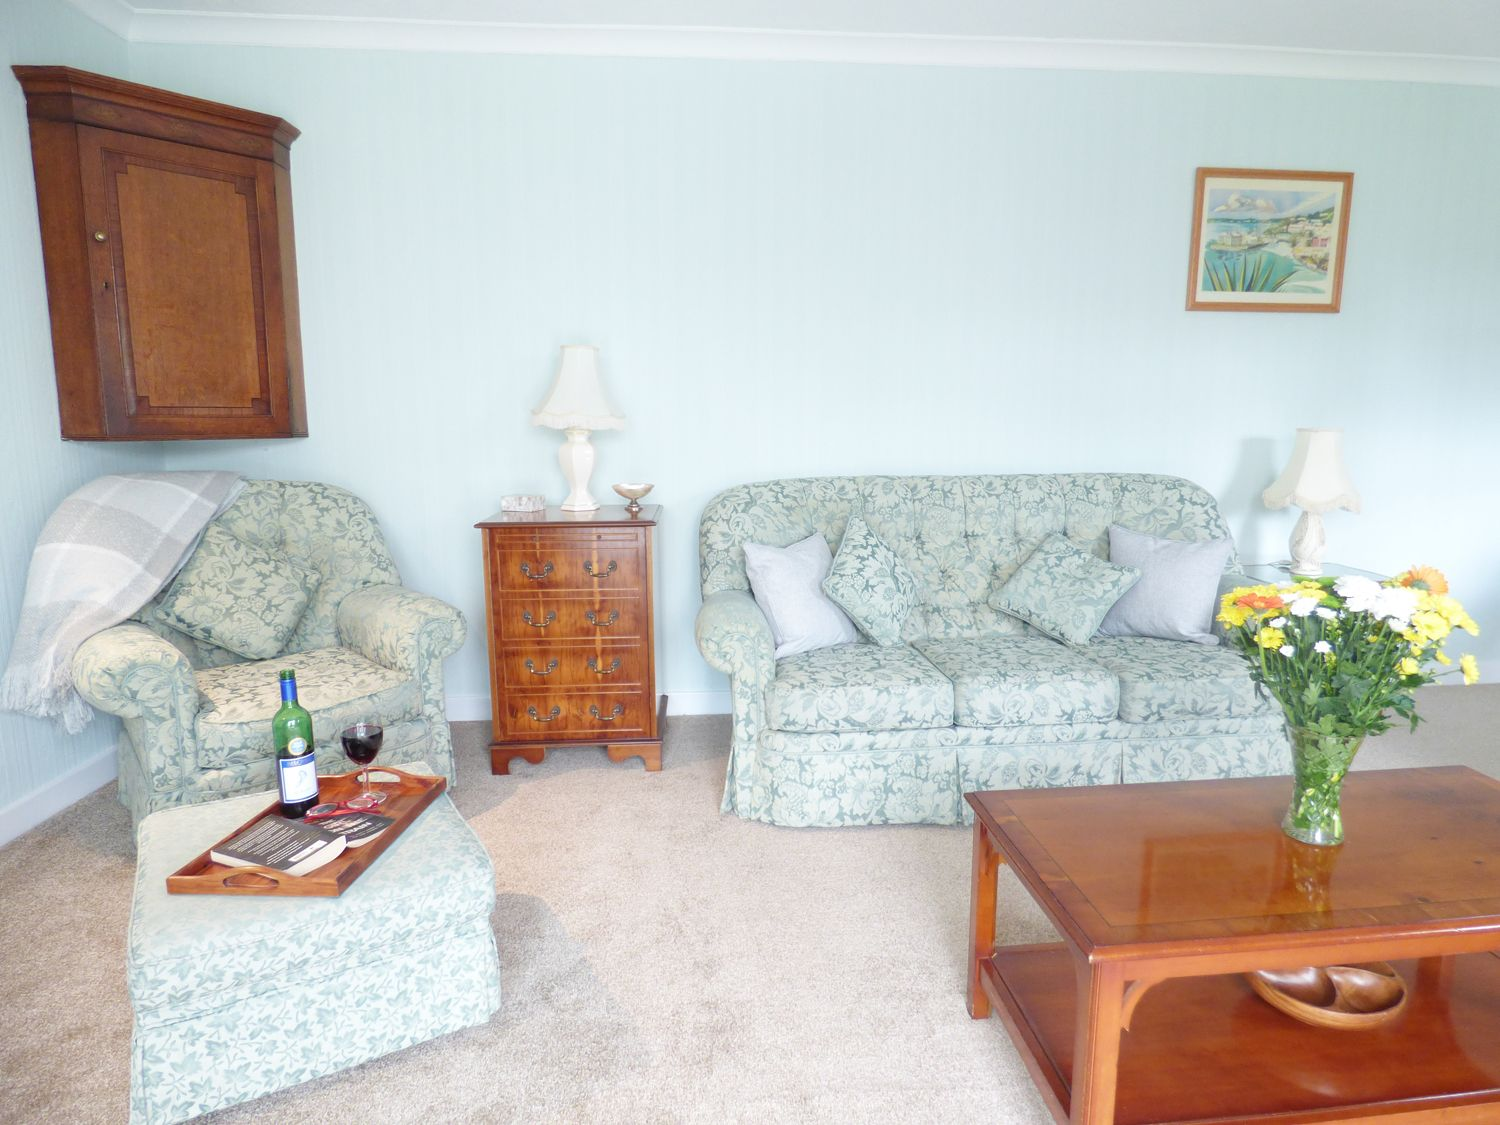 Ross House in Chester - sleeps 8 people